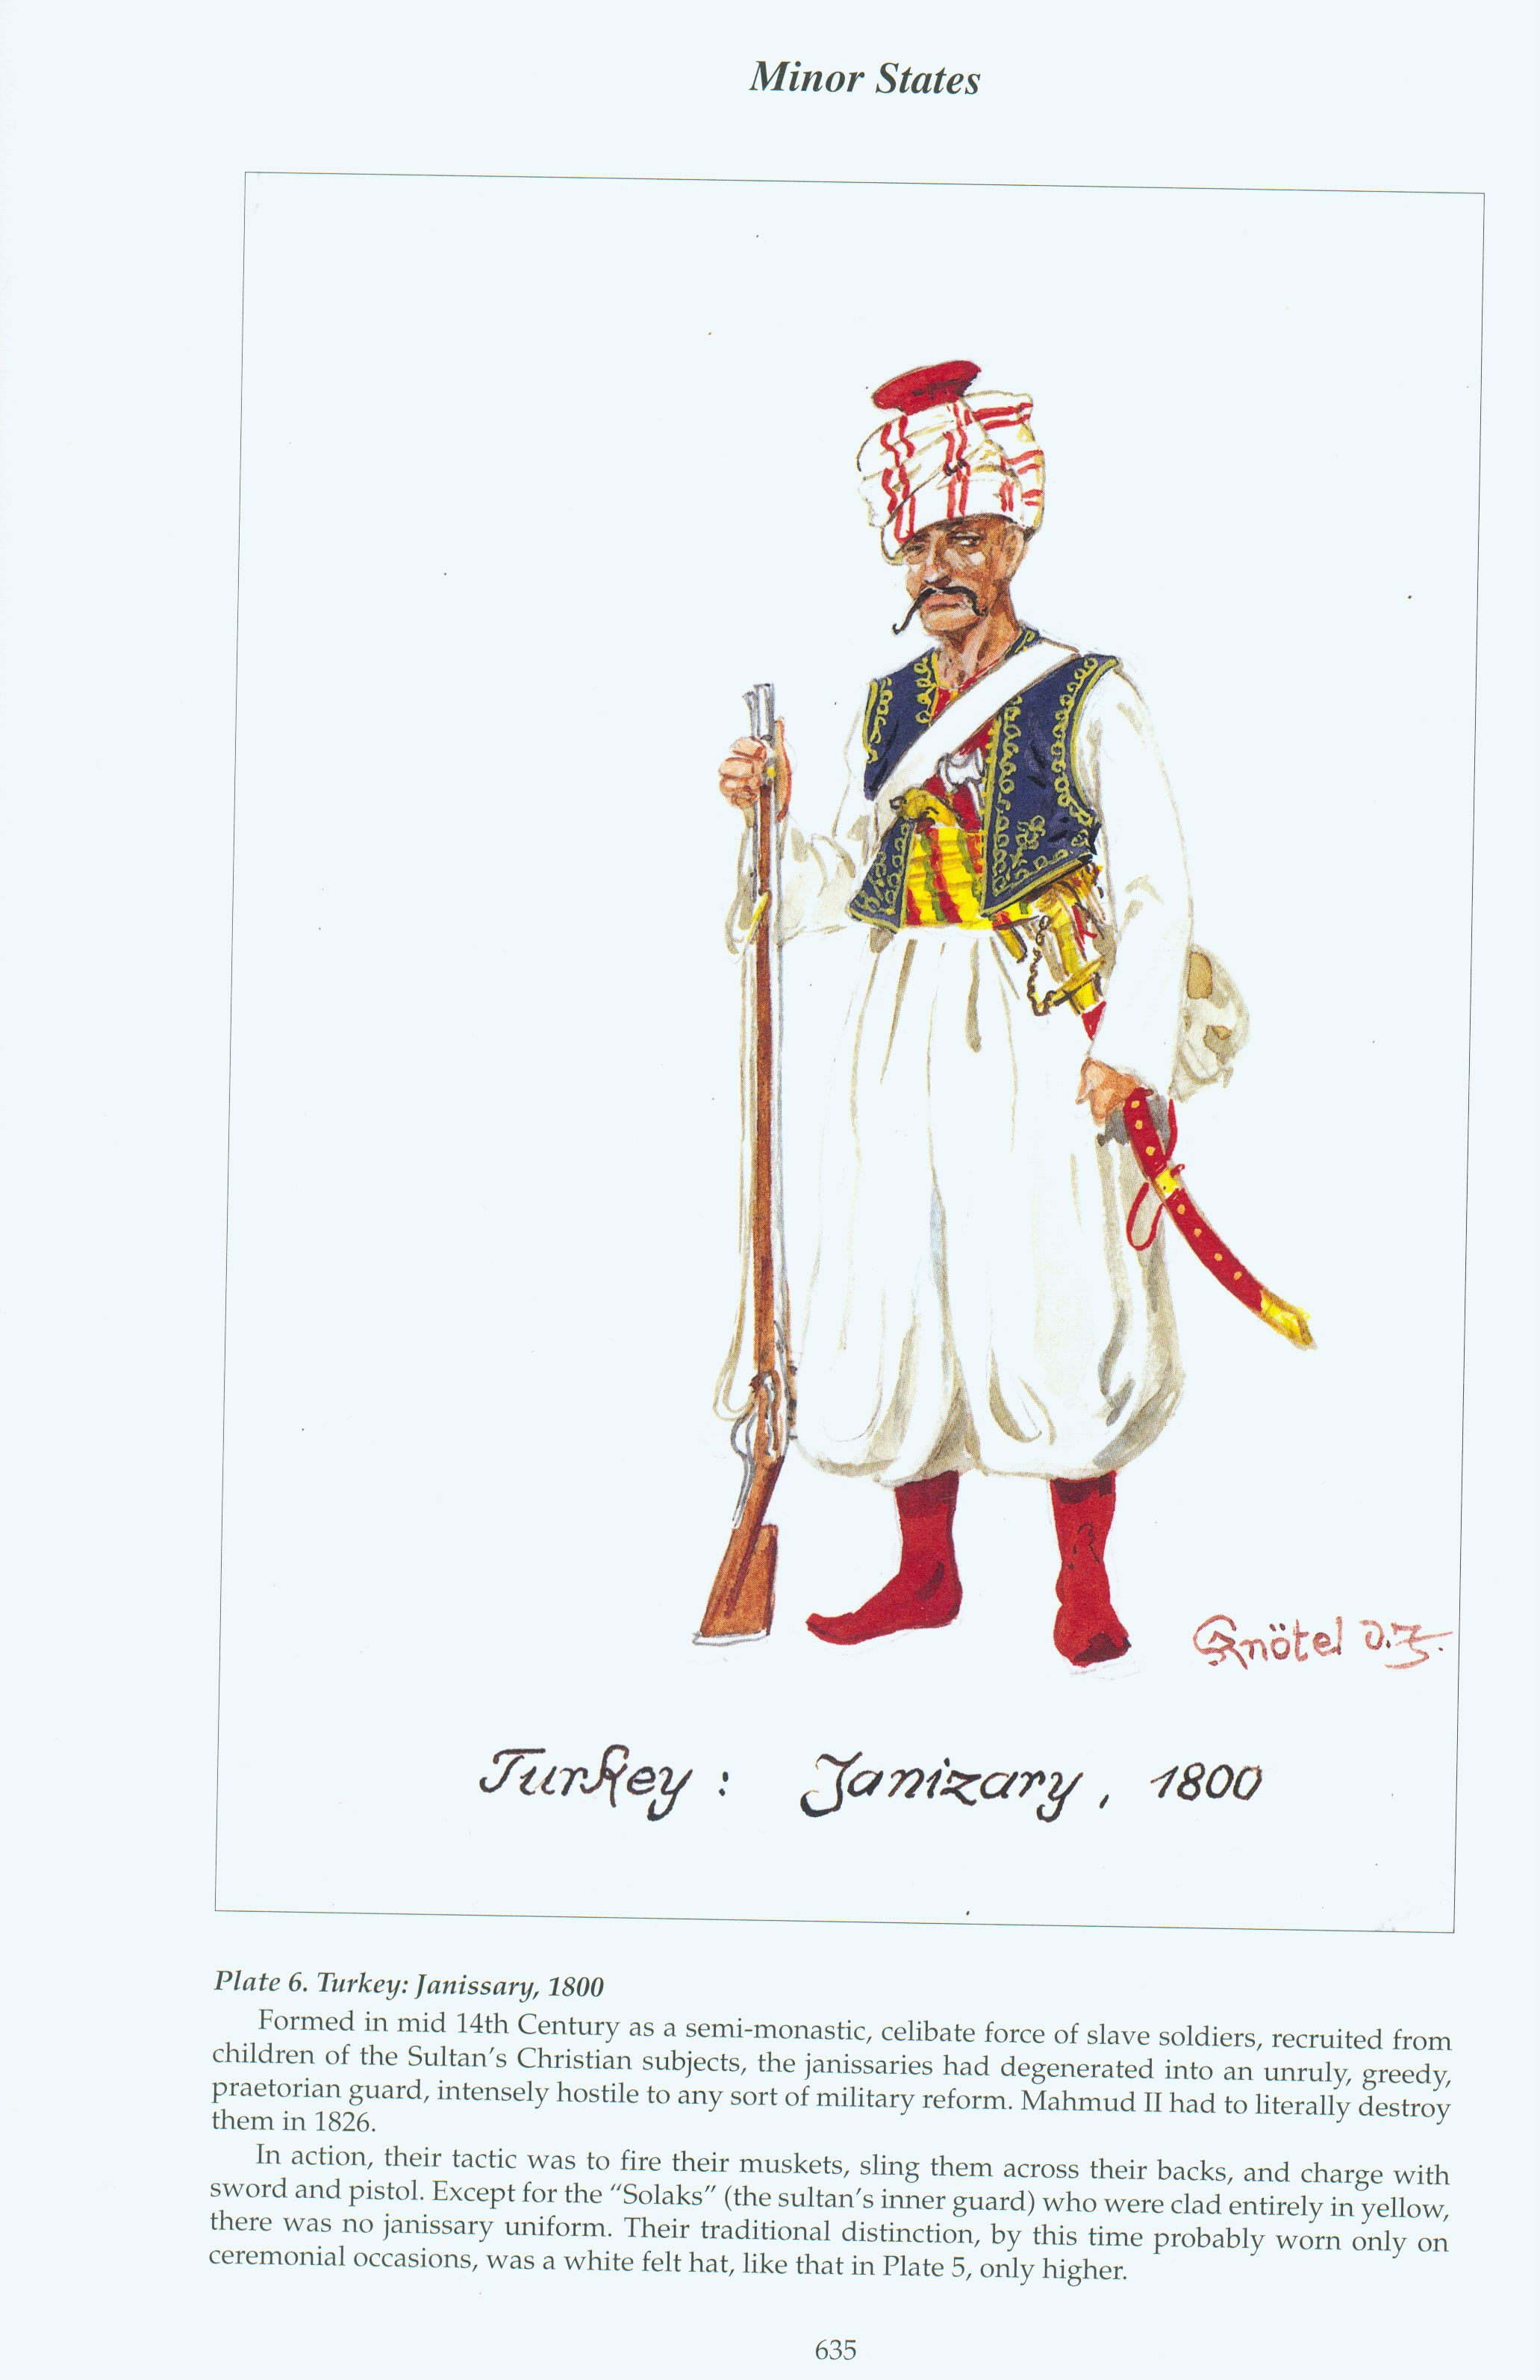 Minor States: Plate 6. Turkey: Janissary, 1800 ...